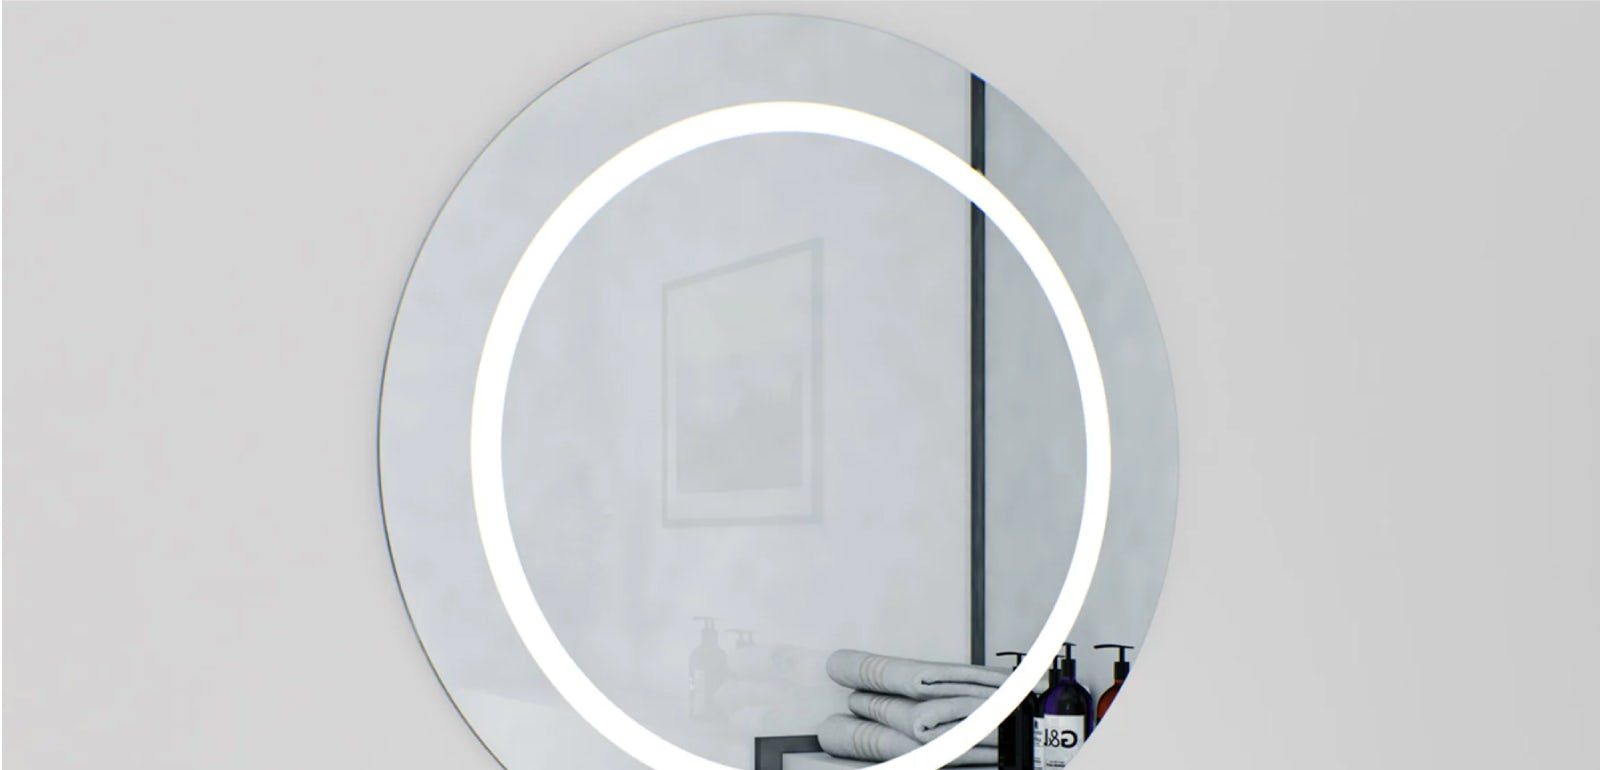 I can see clearly now… with an anti-fog bathroom mirror